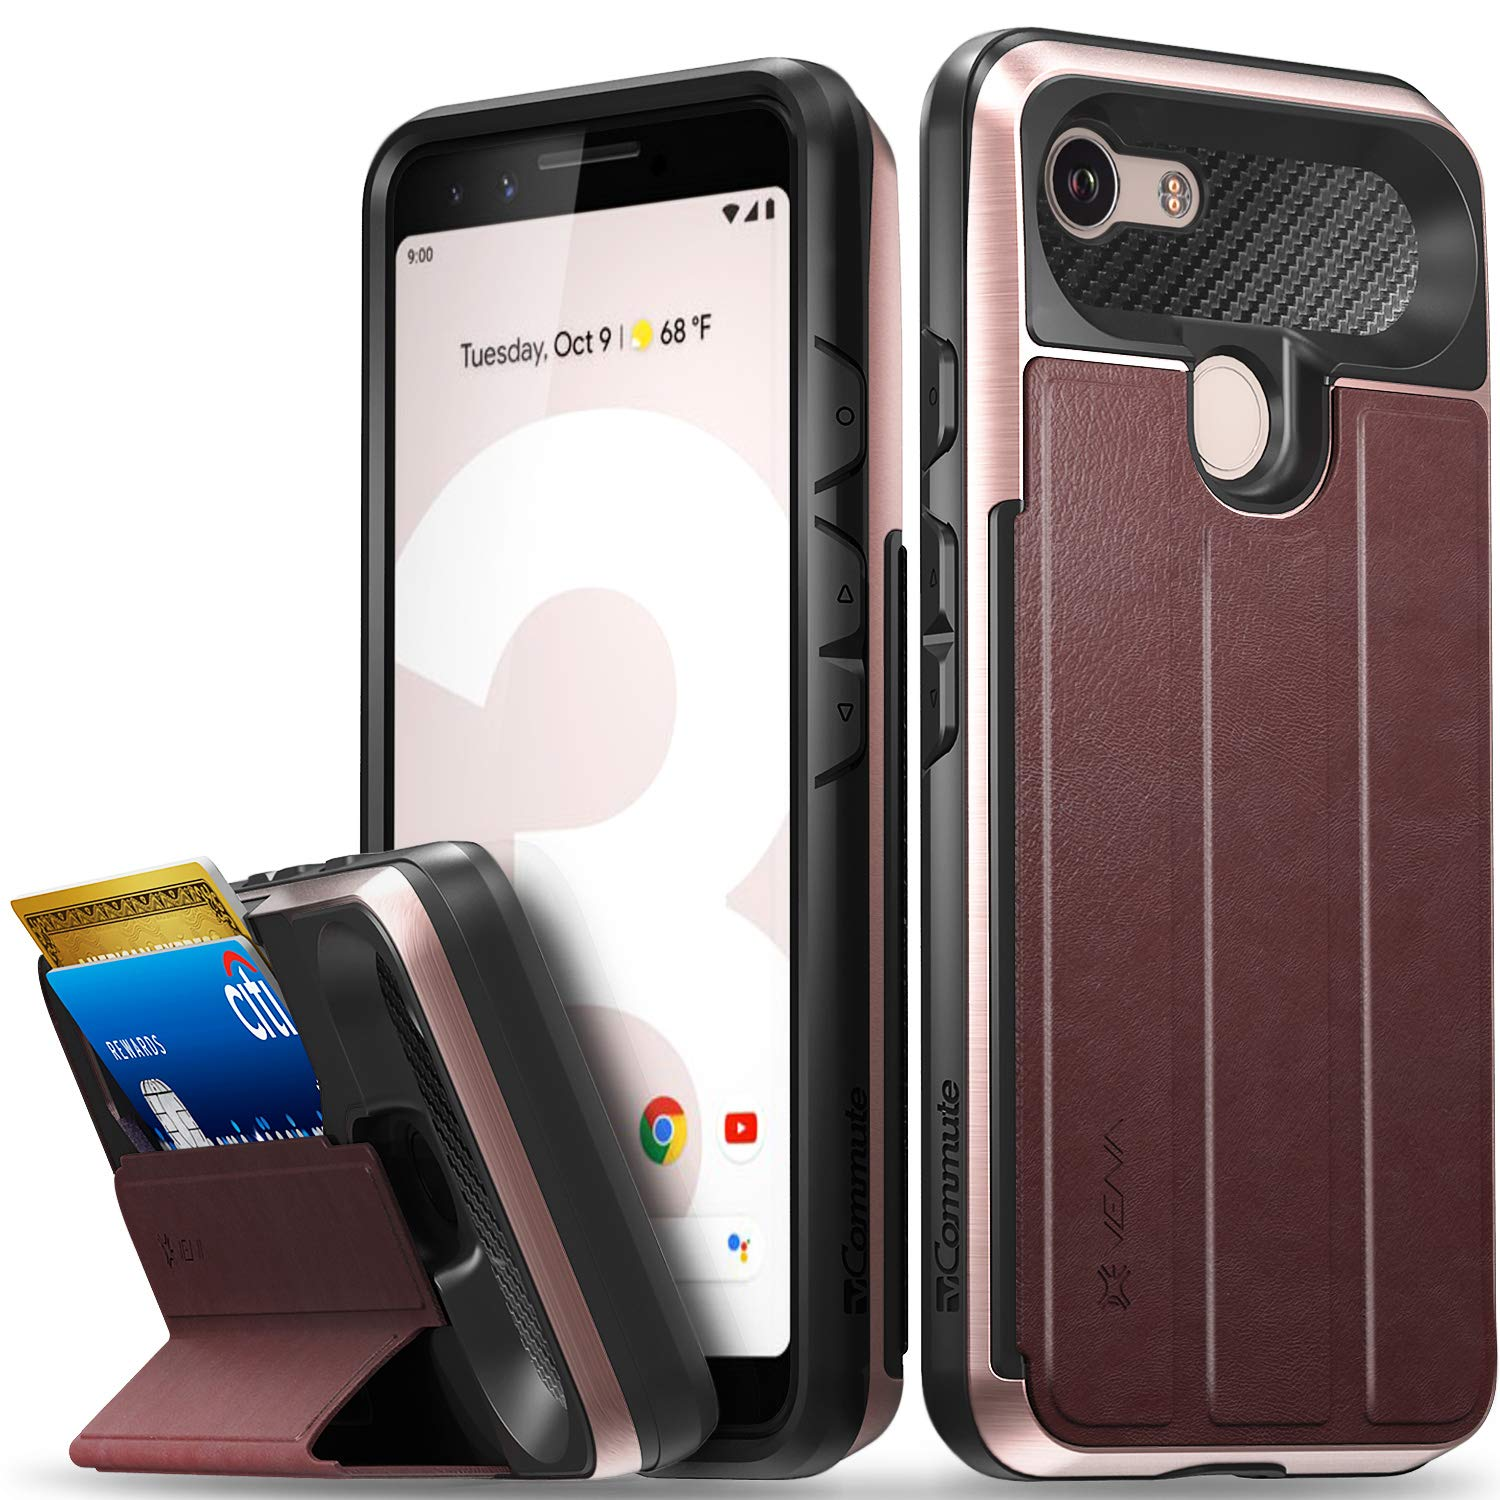 Vena Google Pixel 3 Wallet Case, [vCommute][Military Grade Drop Protection] Flip Leather Cover Card Slot Holder with Kickstand for Google Pixel 3 (Rose Gold/Red/Black)